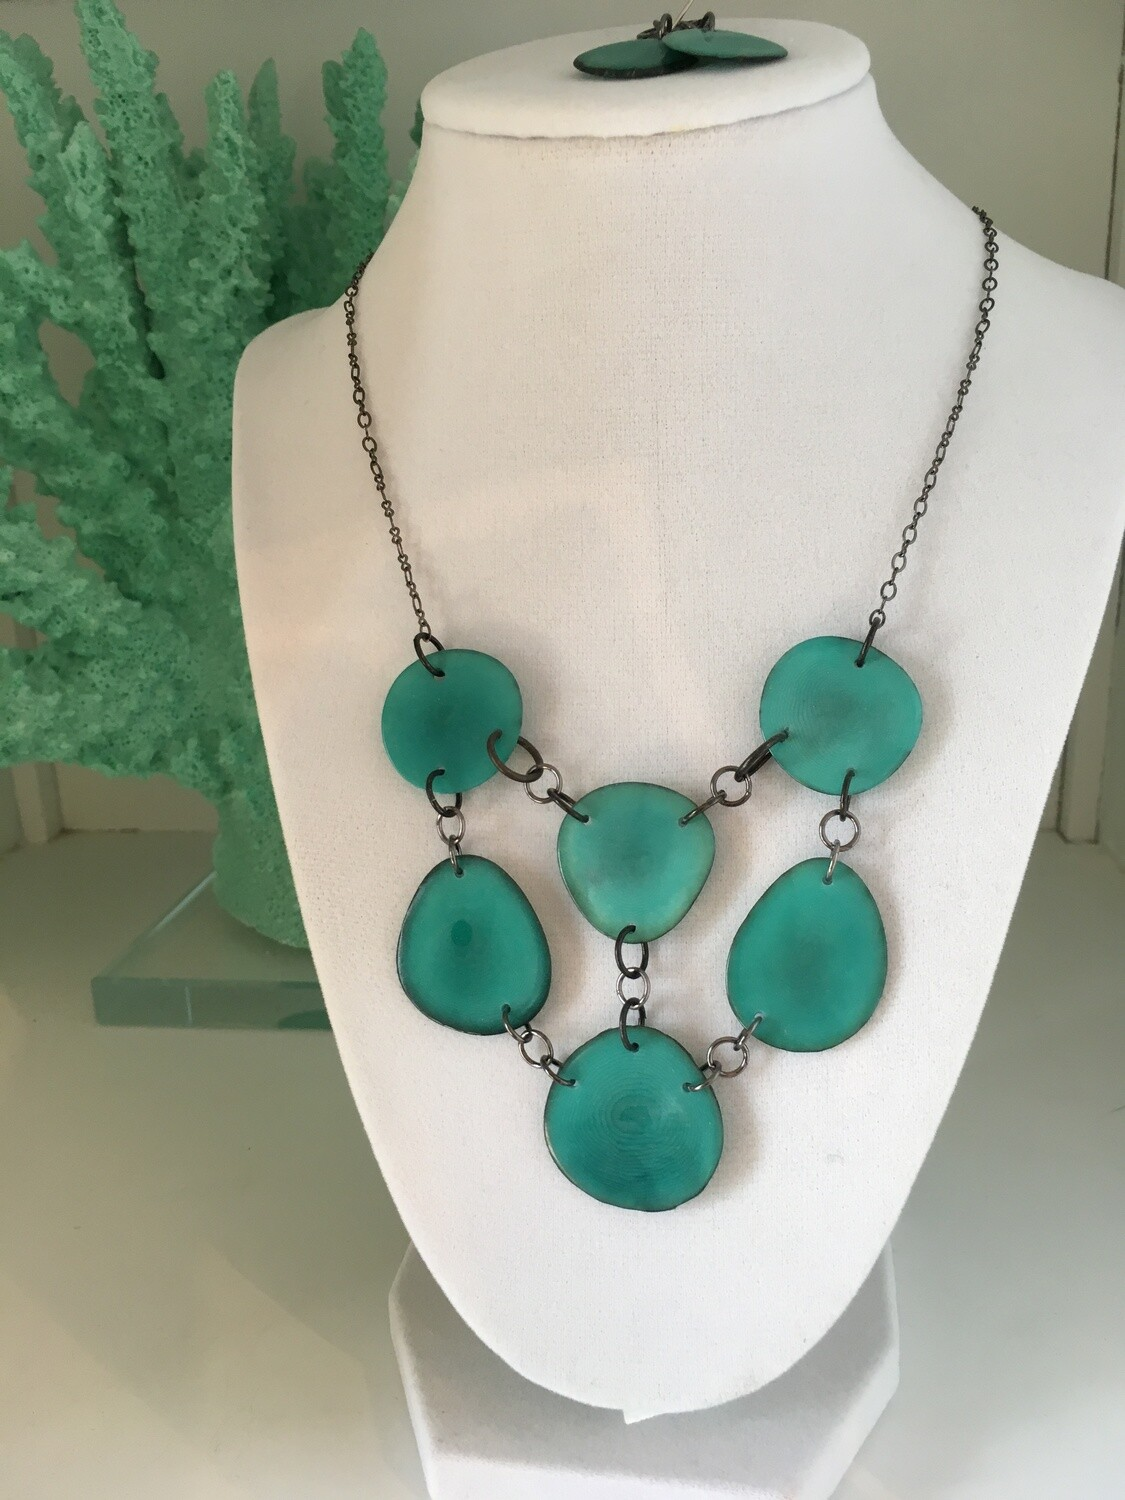 Aqua Bib Necklace